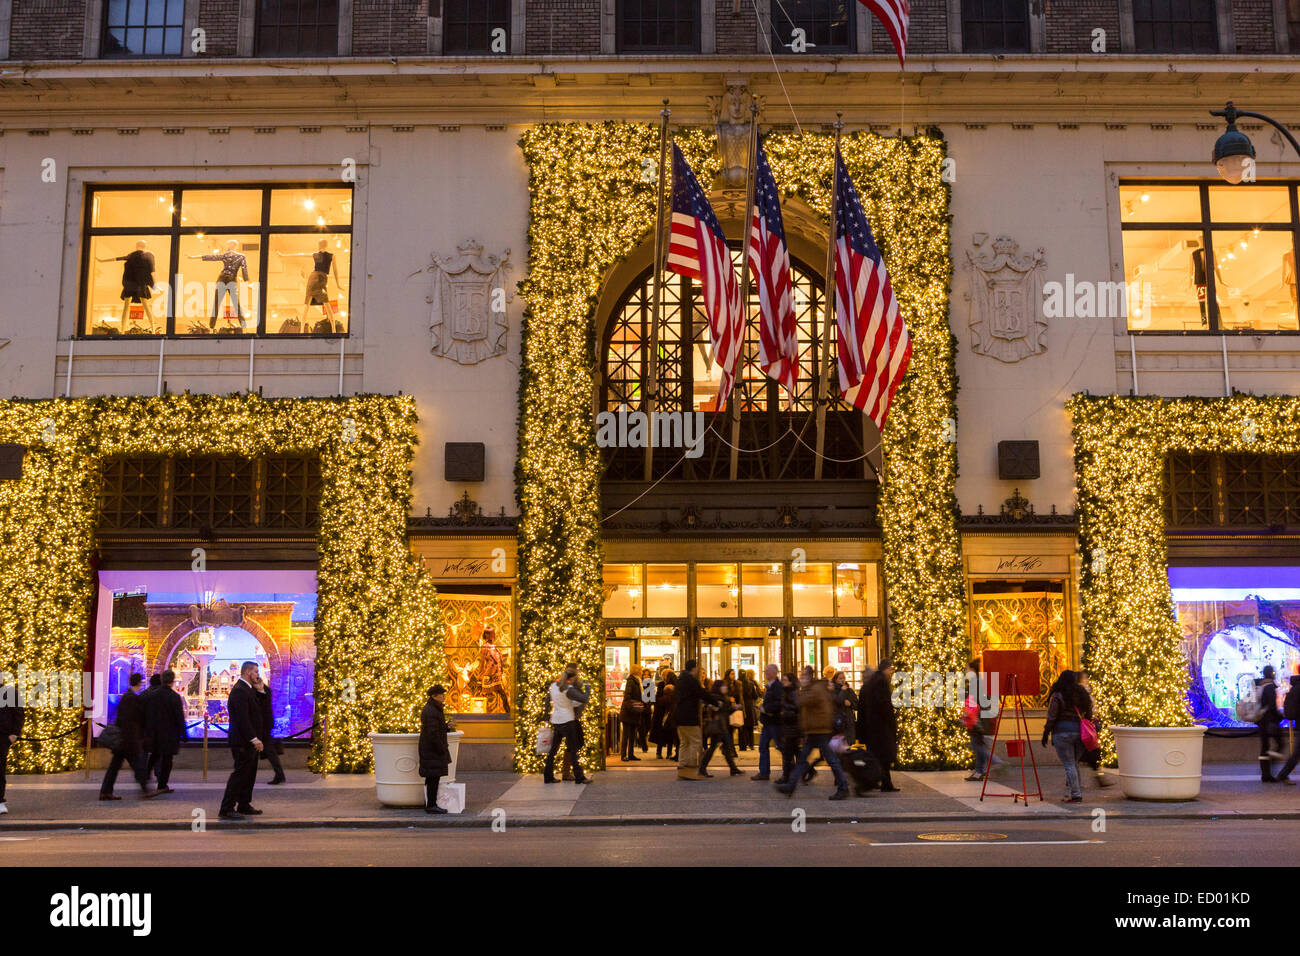 Lord and taylor holiday store hours - Print Wholesale